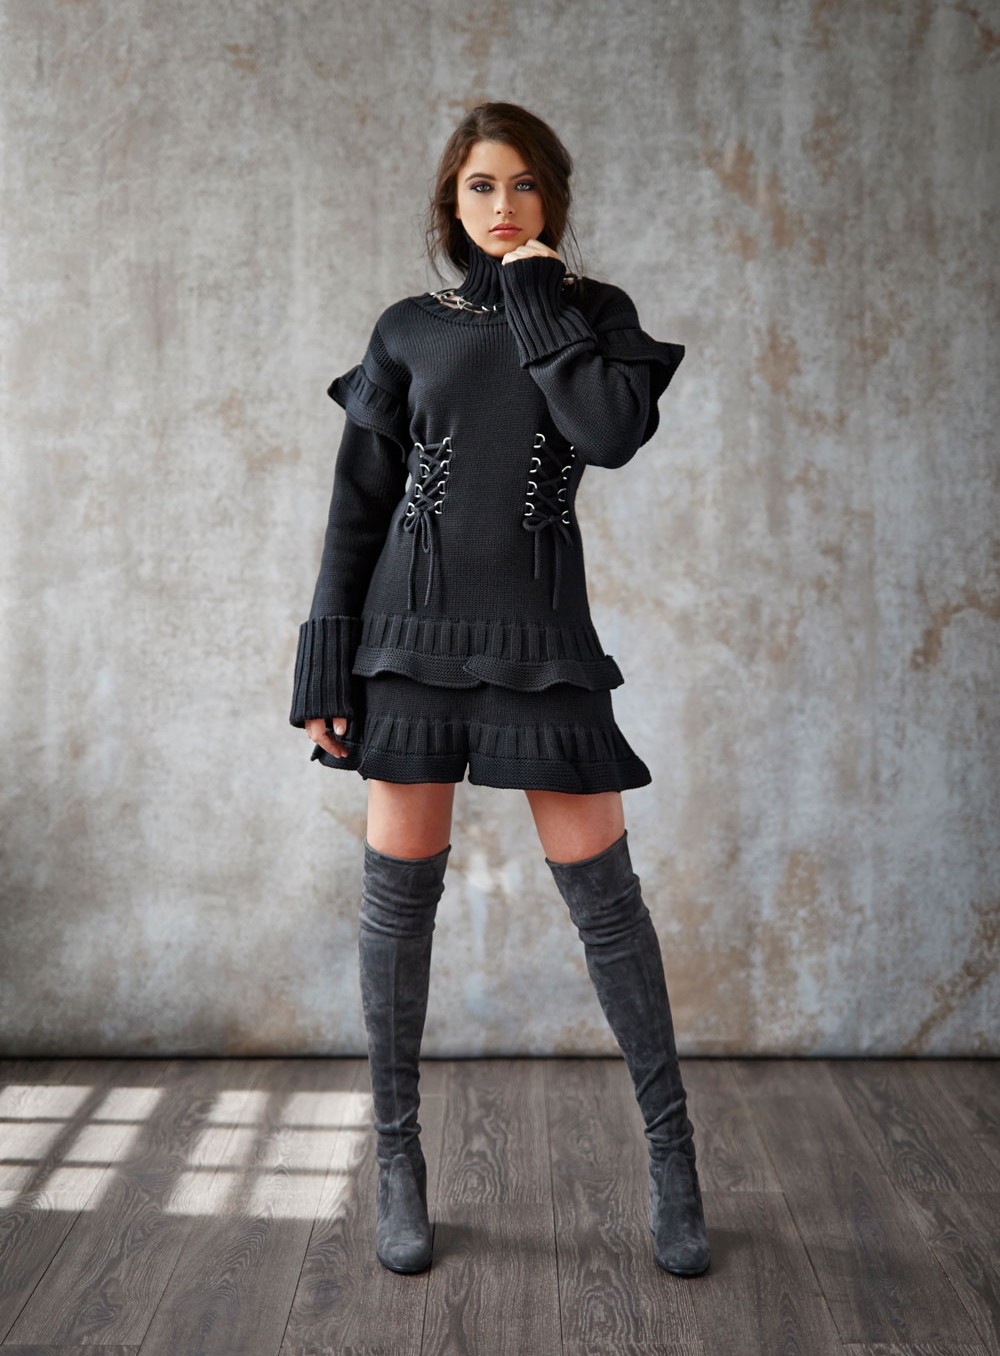 Alexander McQueen sweater dress; Stuart Weitzman over-the-knee suede boots